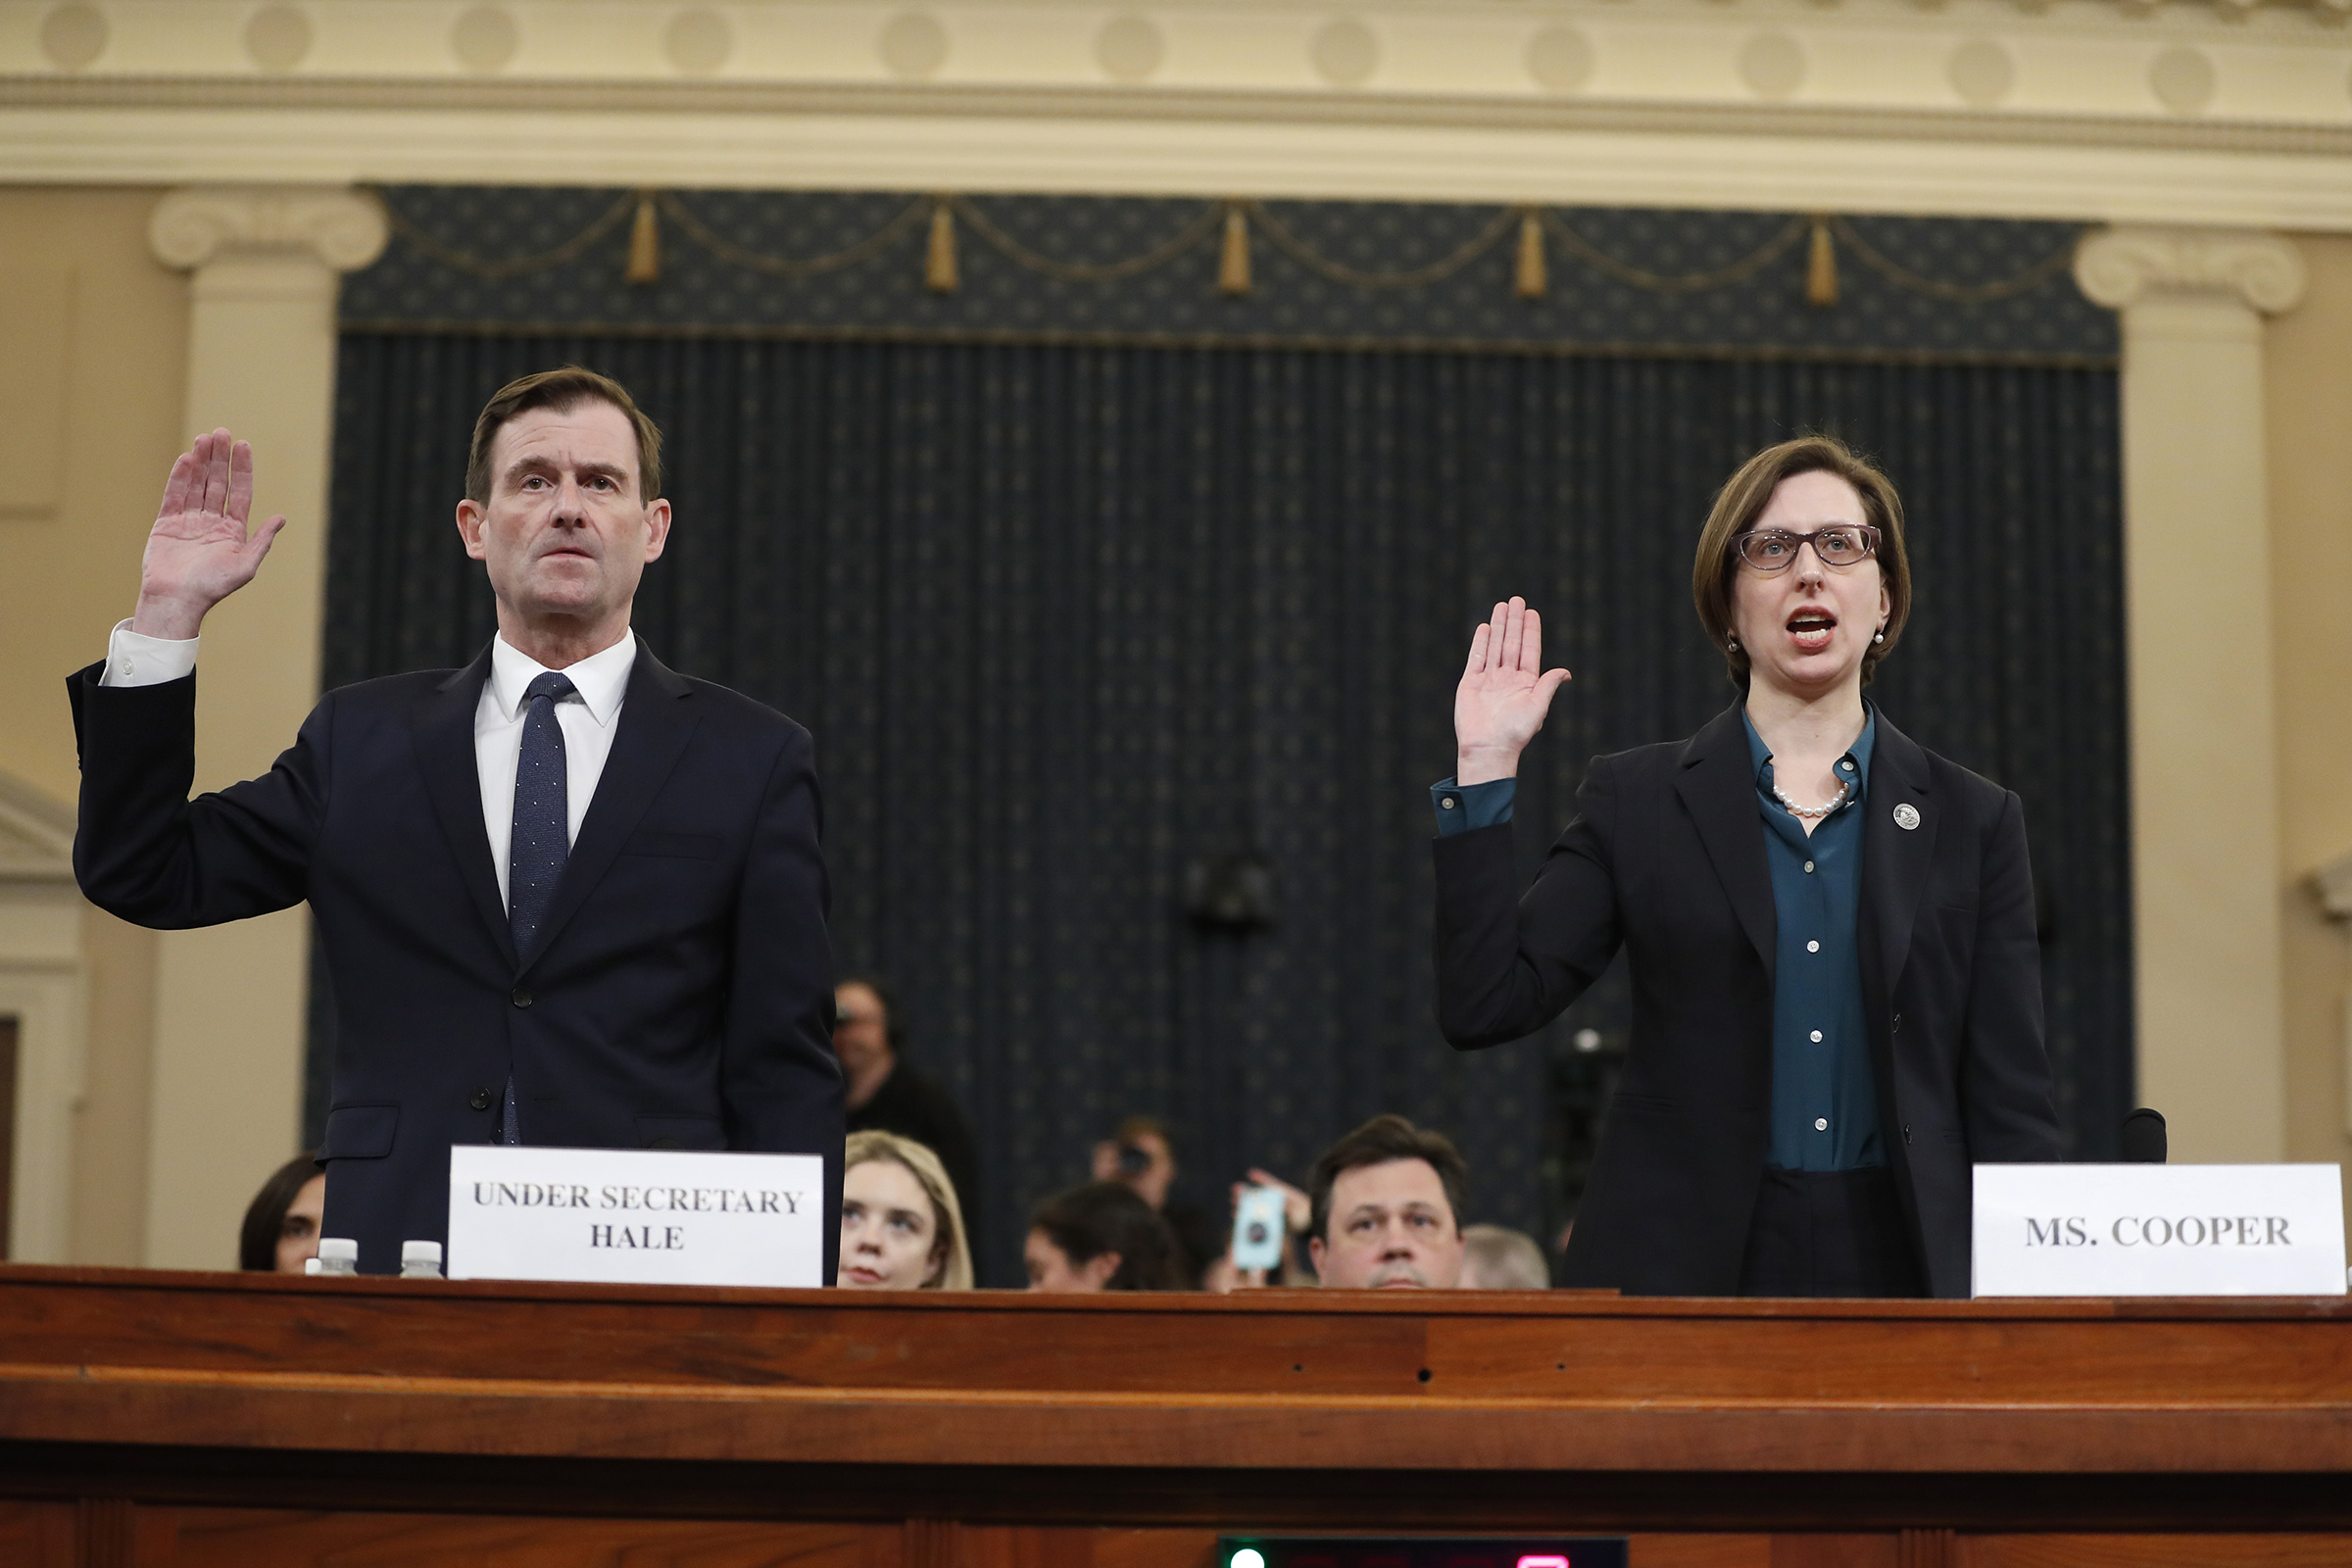 Deputy Assistant Secretary of Defense Laura Cooper, right, and State Department official David Hale, are sworn in to testify before the House Intelligence Committee on Capitol Hill in Washington D.C. on Nov. 20, 2019.